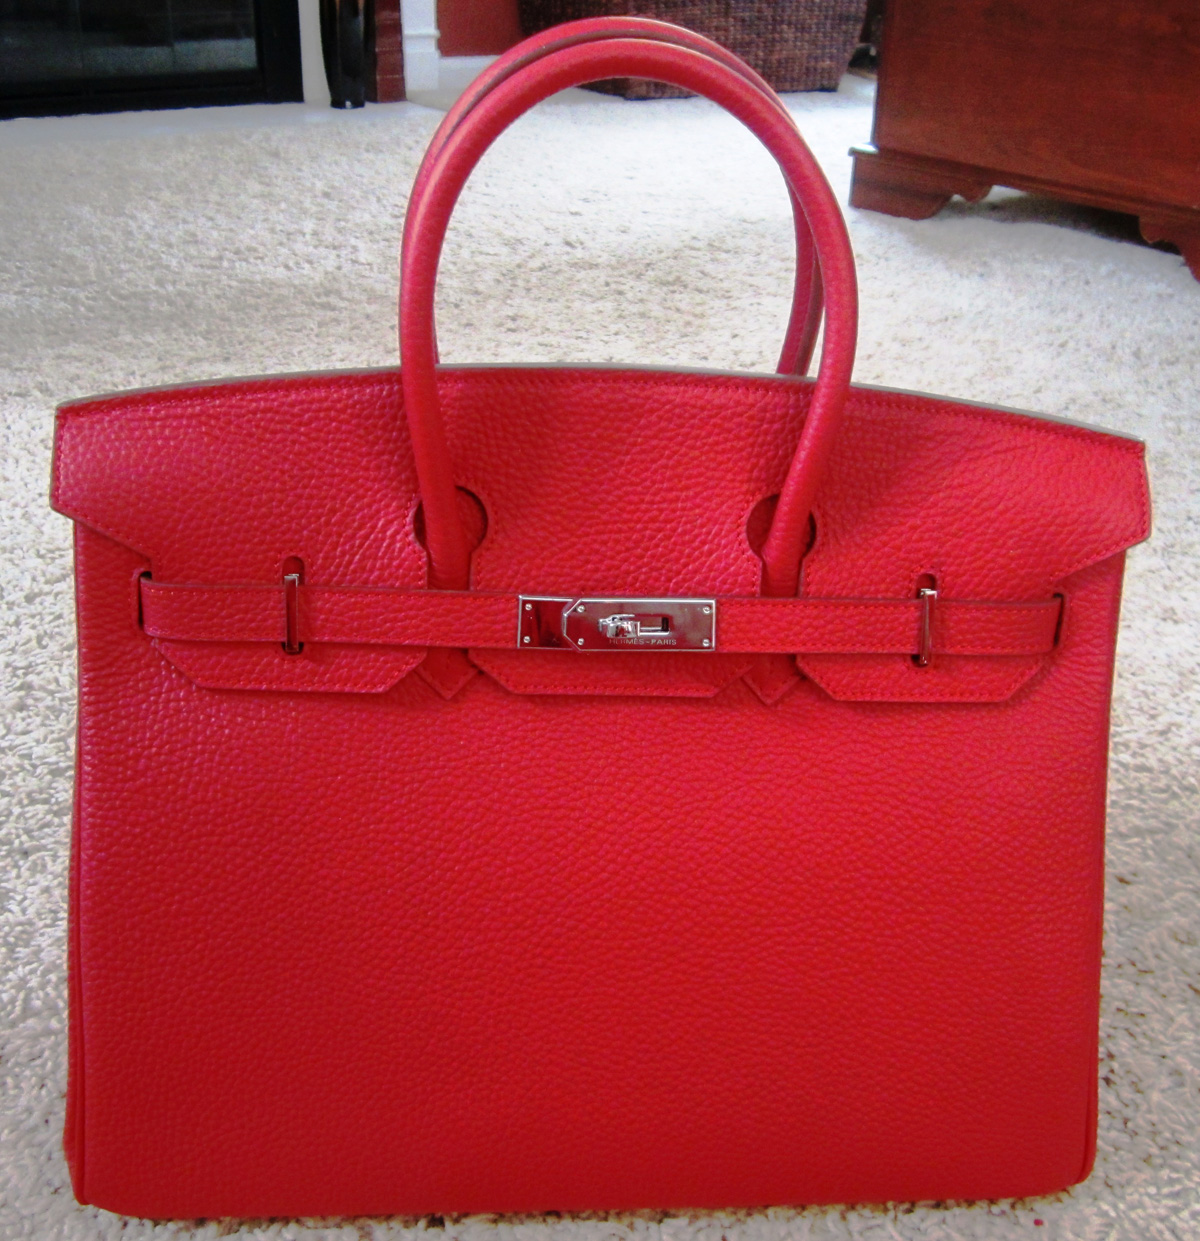 hermes wallet price - Purse Princess: Michelle's Replica Red Hermes Birkin 35